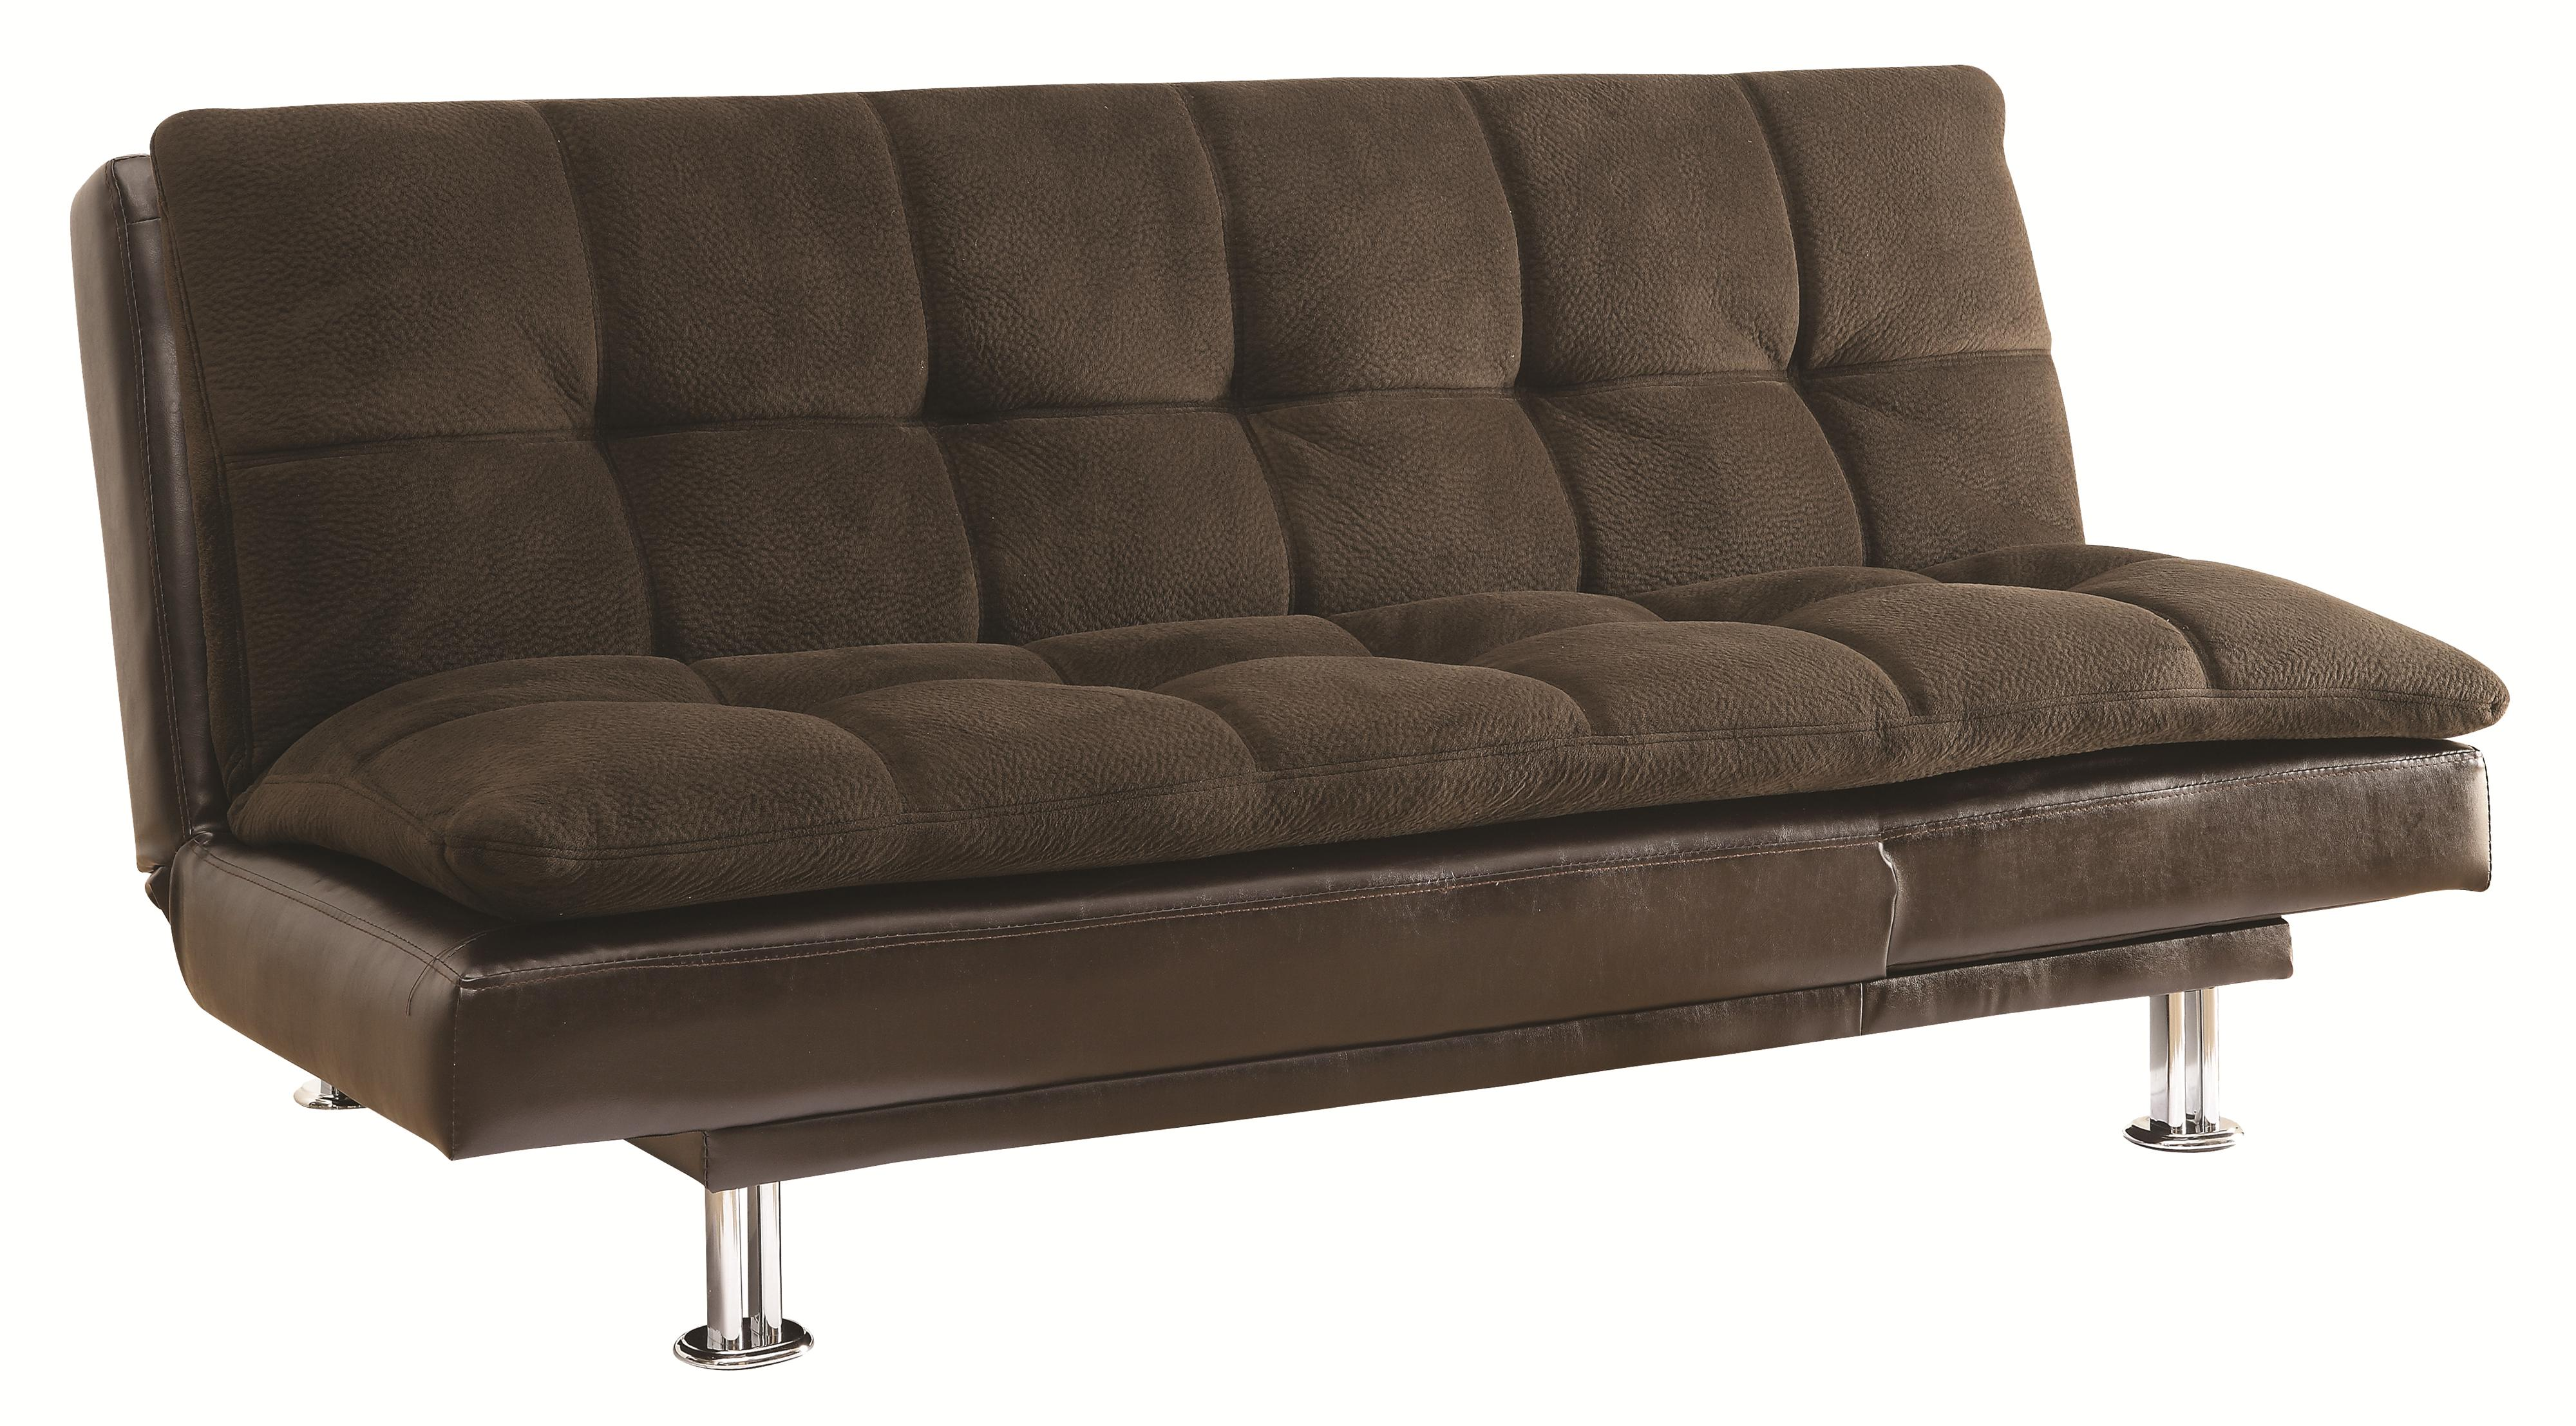 bed and sofa factory darlington low height delivery estimates northeast direct cleveland